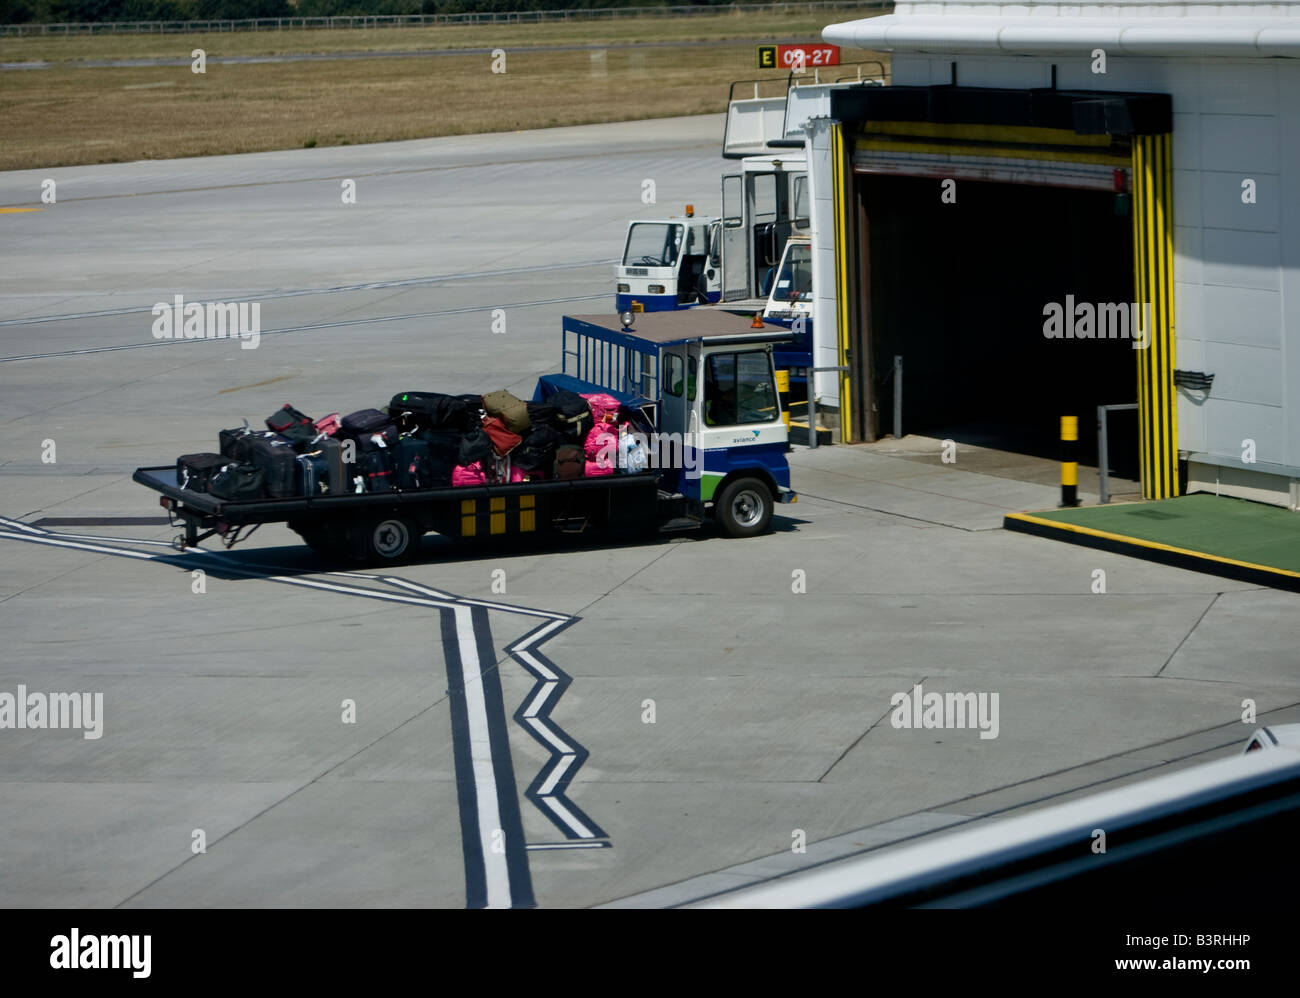 baggage Handler Jersey Airport Air side Luggage - Stock Image